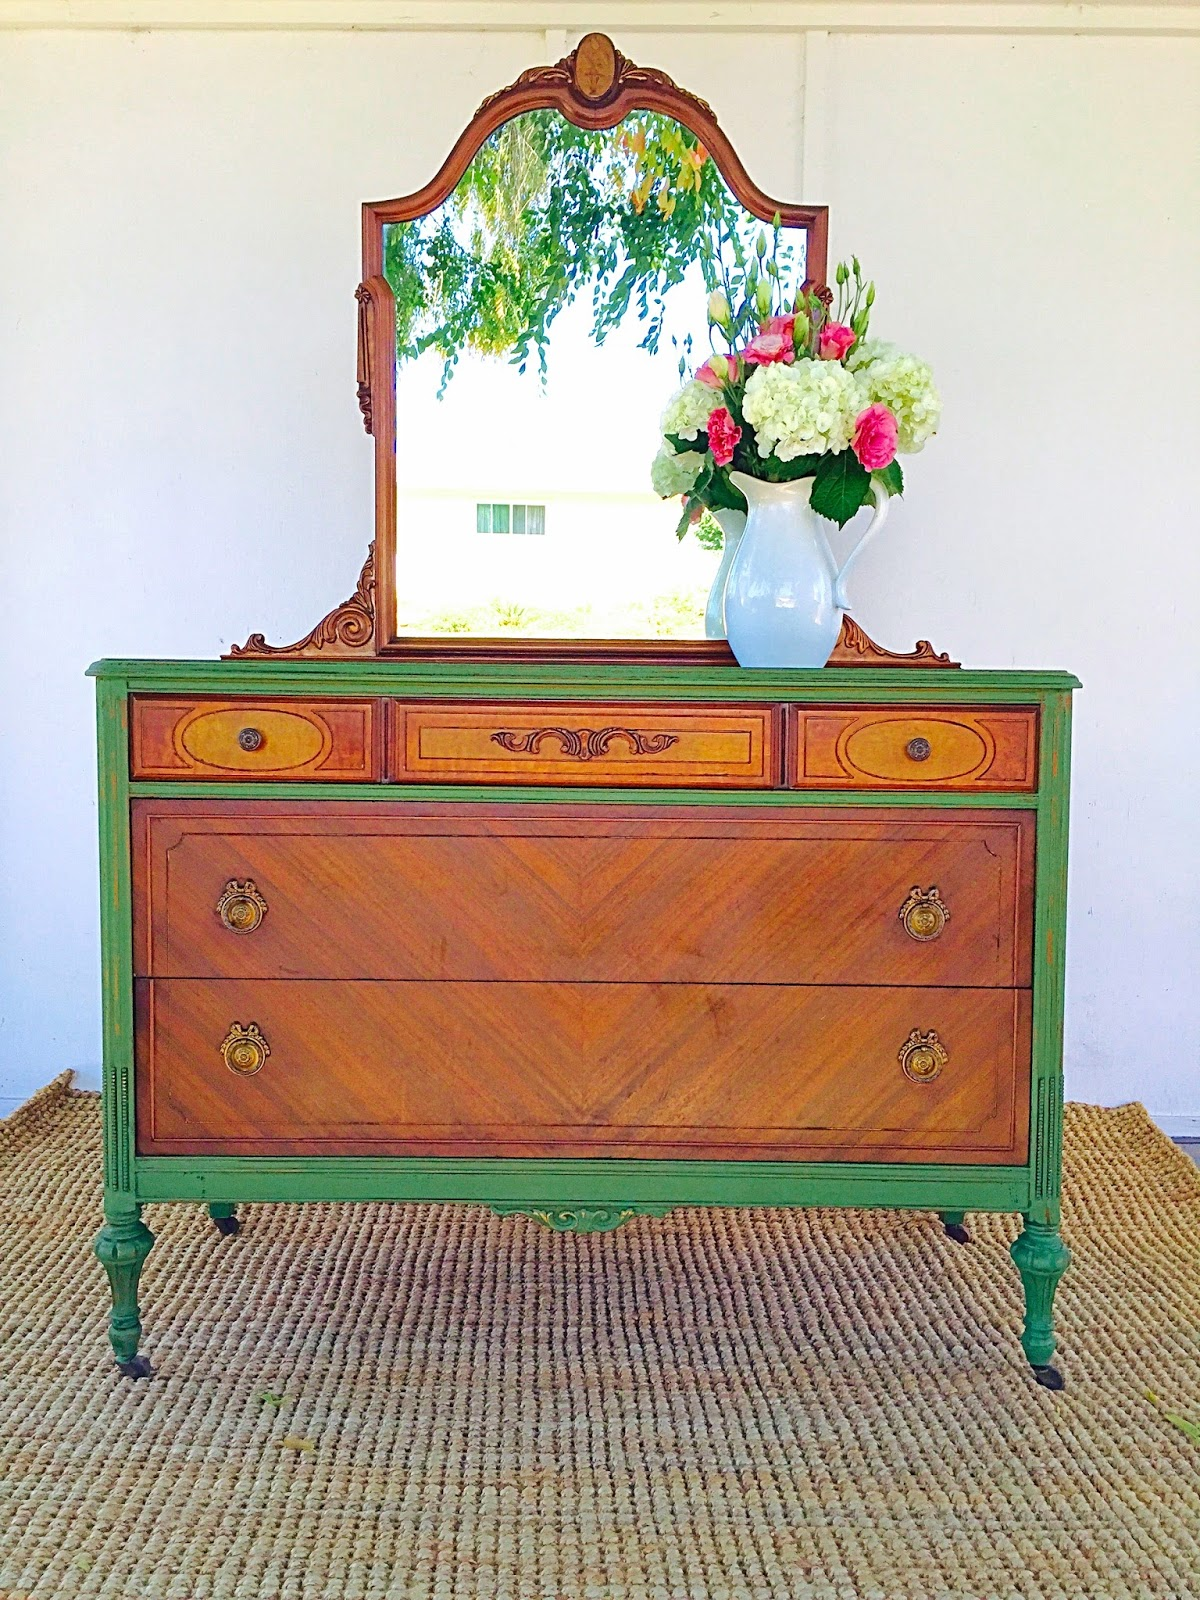 D d 39 s cottage and design vibrant green milk paint dresser for Painting designs on wood furniture